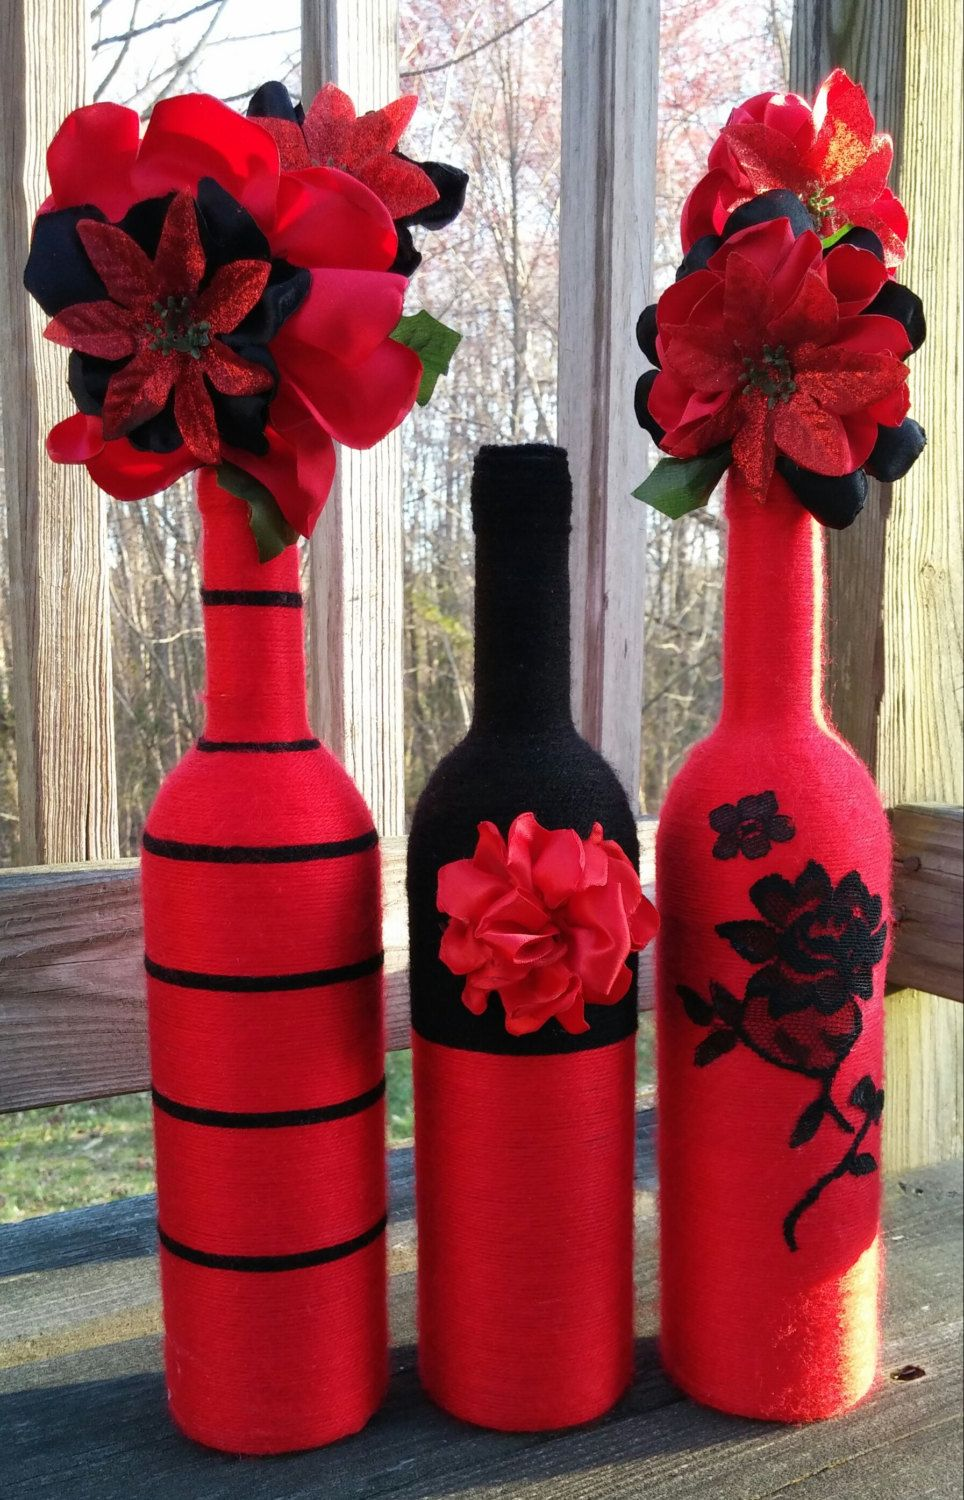 1000 images about yarn bottlesspring home decoryarn artwine bottlesflower vasesdesk accessory on pinterest yarn bottles wrapped bottles and vase